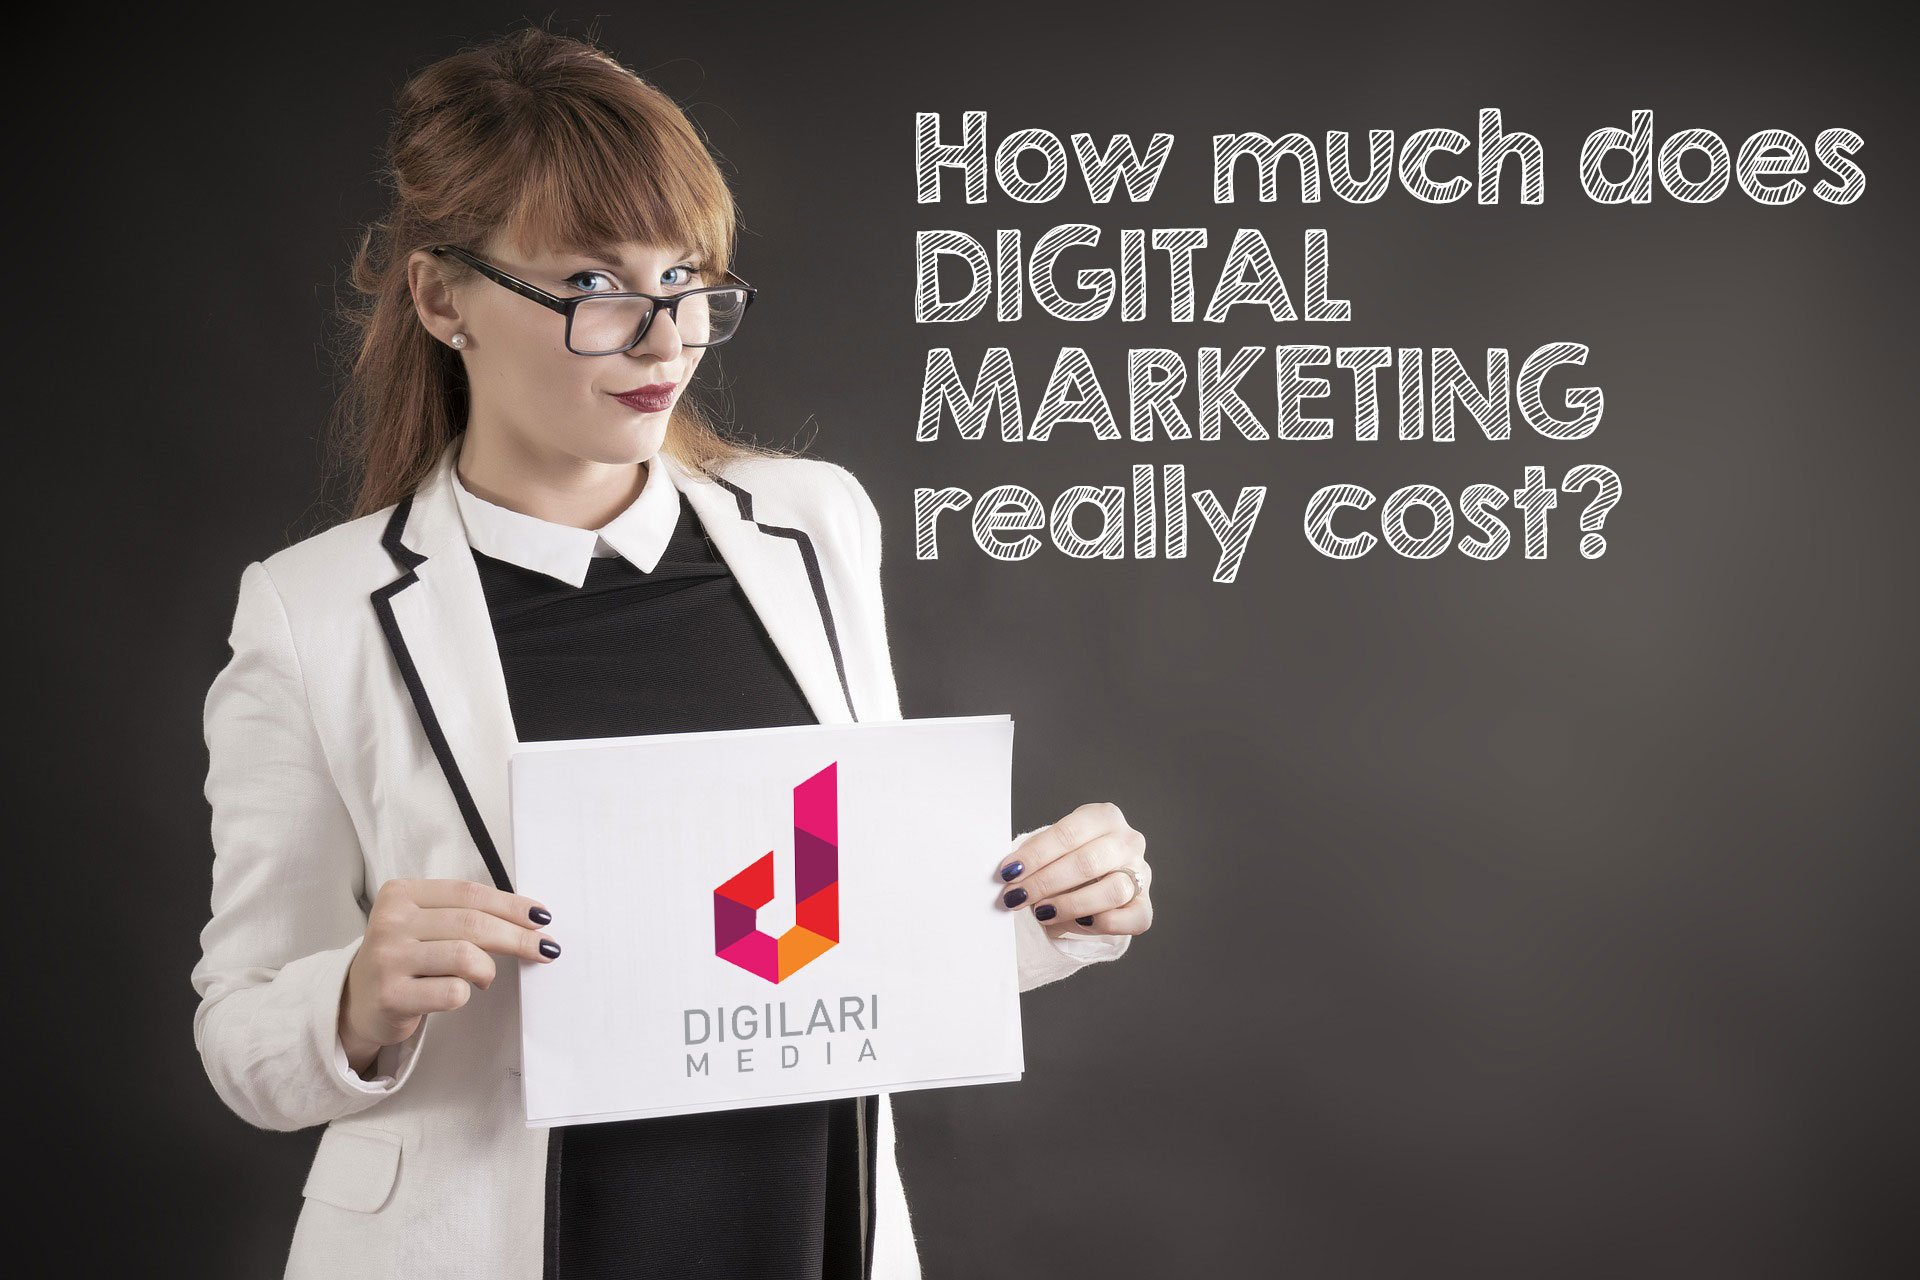 Digital Agency Costs